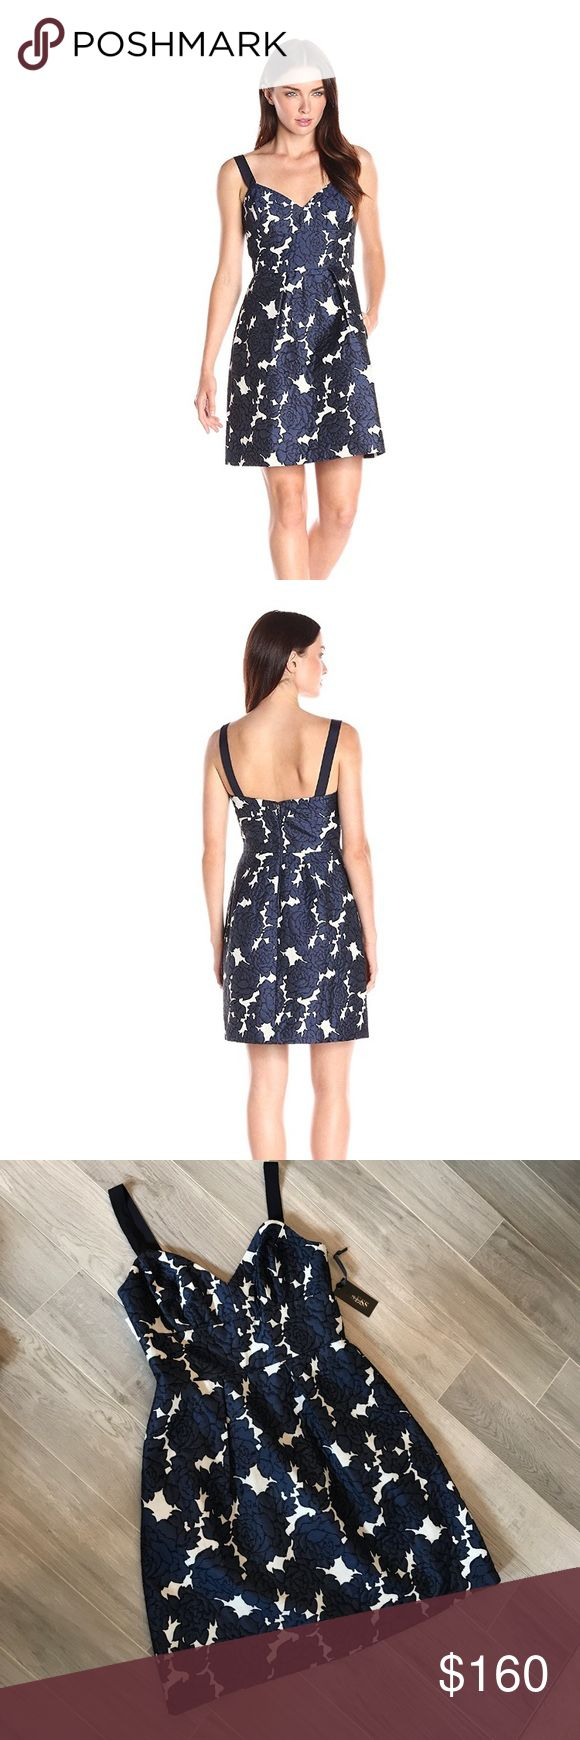 ✨NWT Vera Wang Designer Dress NWT. Adorable floral jacquard strappy dress. Grosgrain ribbon straps. Dress lined with acetate lining. Pockets!  Perfect condition, it just does not fit me :(  Stock photos courtesy of Amazon and Nordstrom, where you can find this dress sold for >$250. Vera Wang Dresses